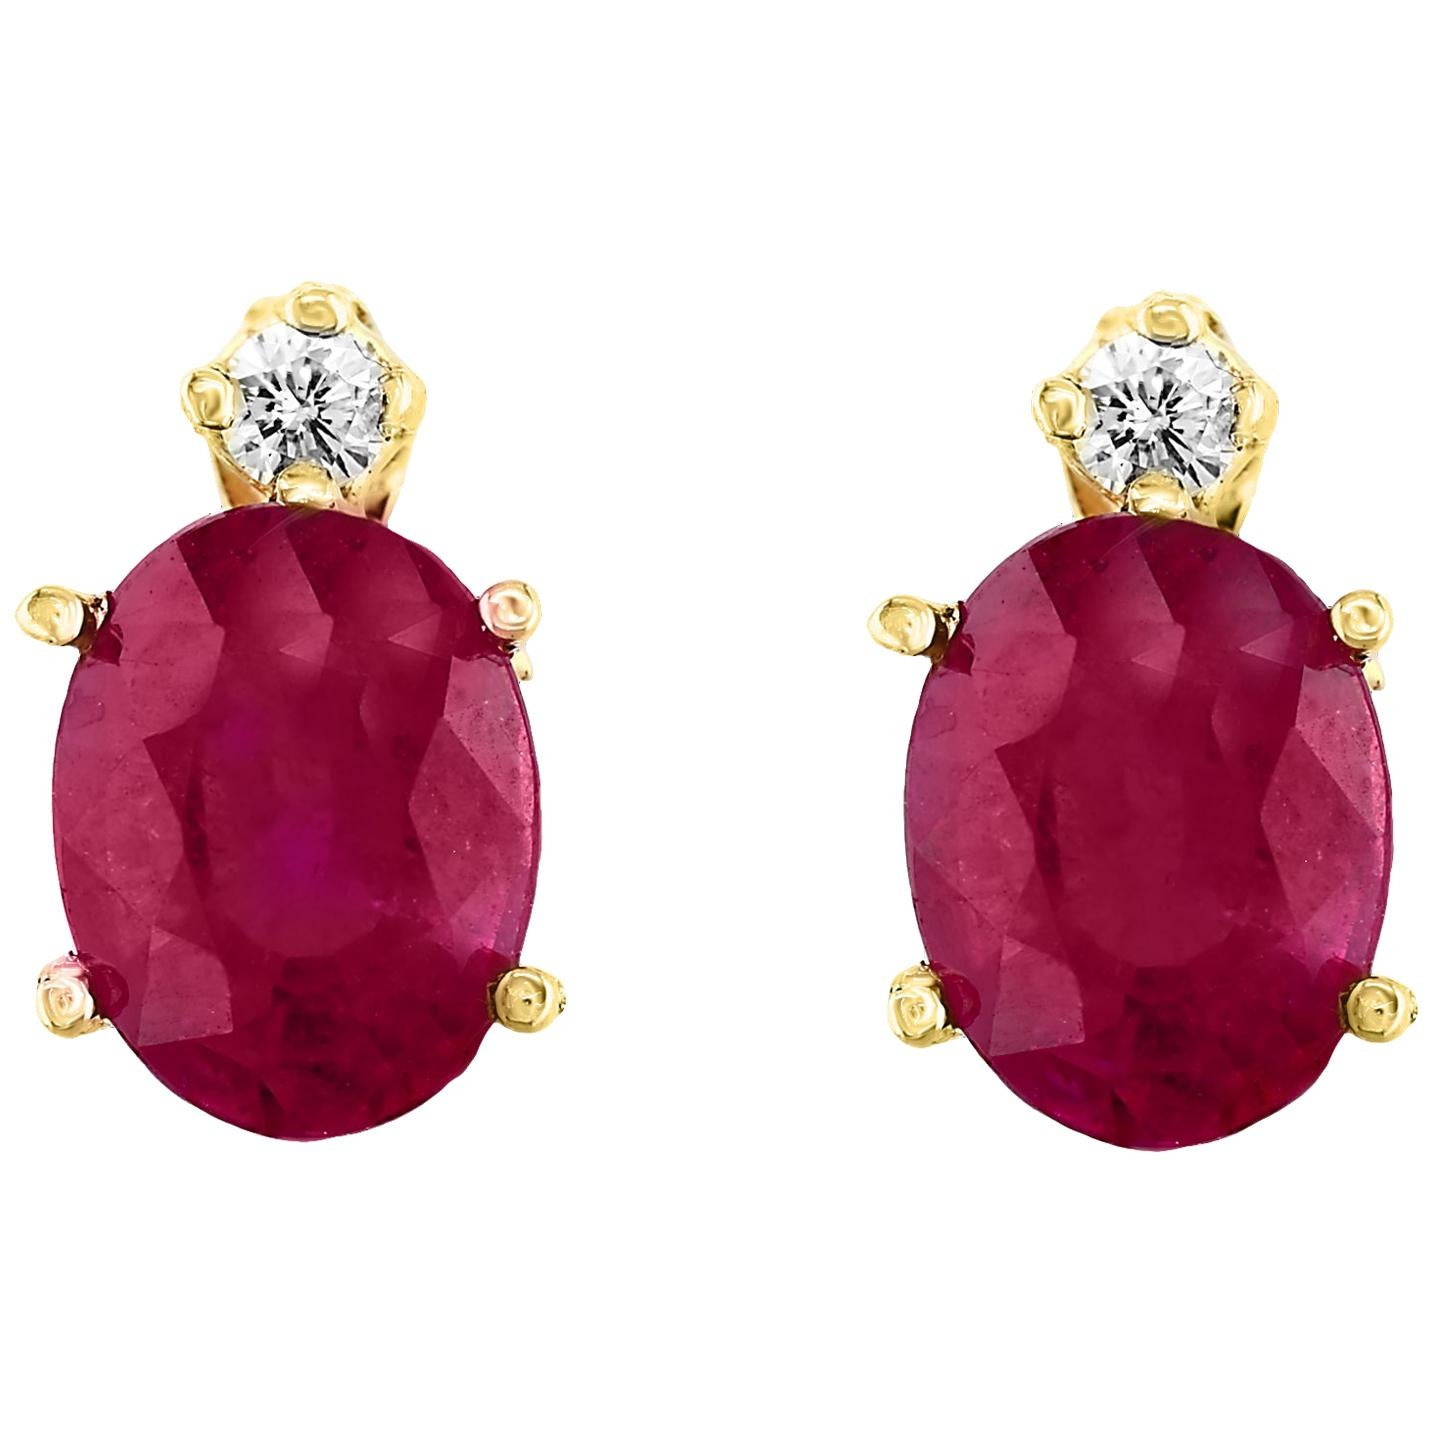 1.70 Carat Oval Natural Ruby and Diamond Stud Post Earrings 14 Karat Yellow Gold